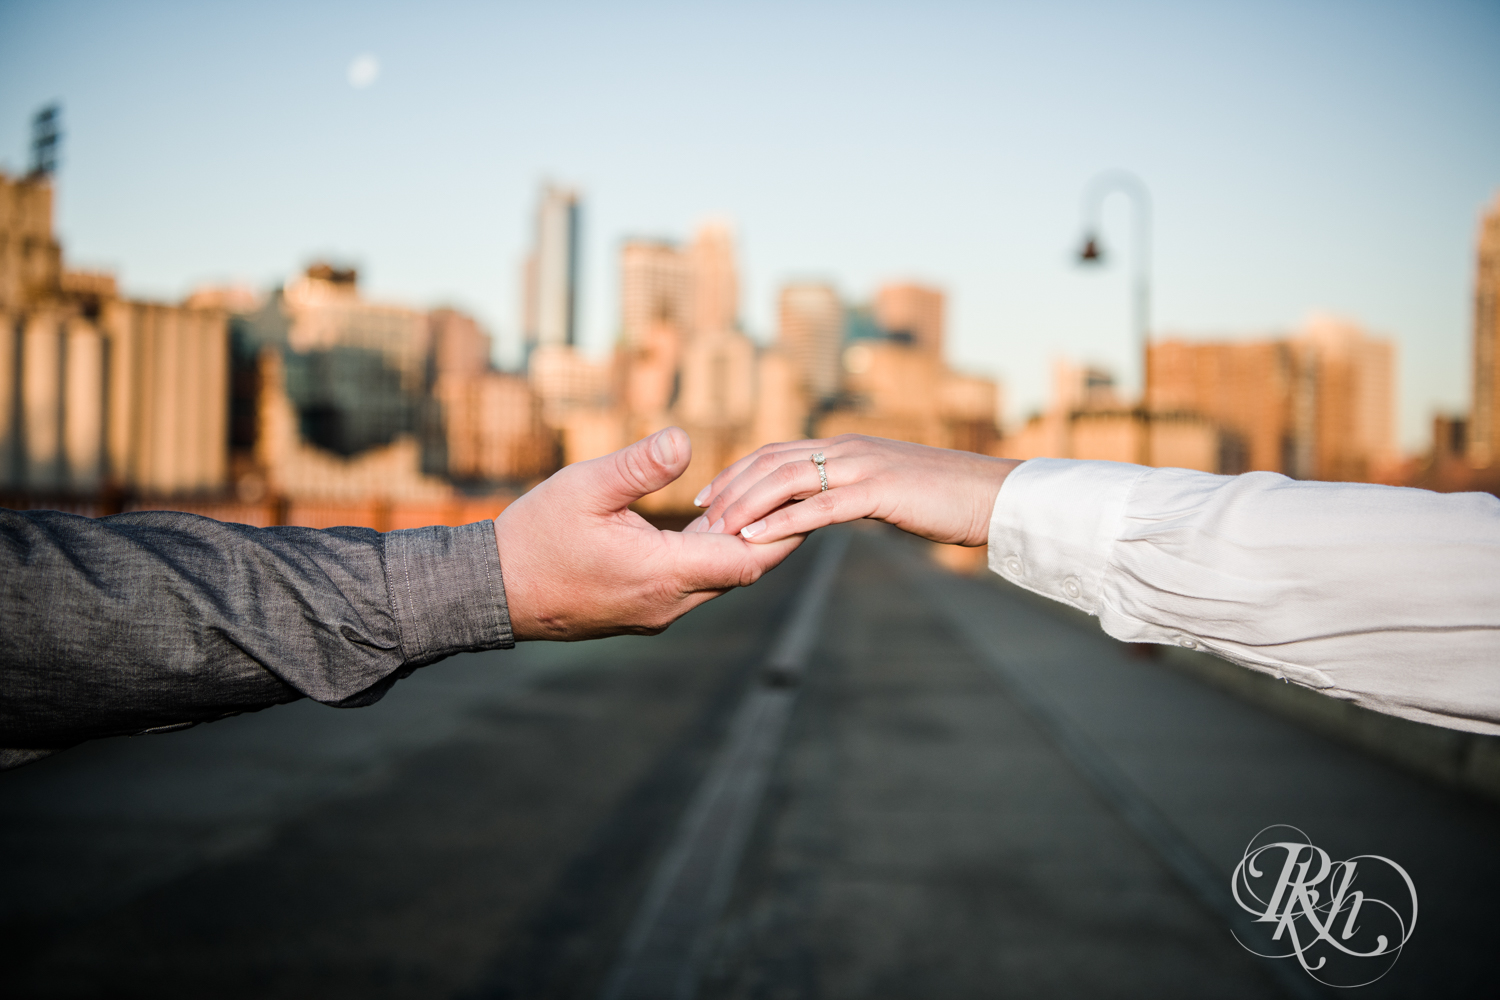 Jolene & Mike - Minnesota Engagement Photography - Sunrise - Stone Arch Bride and St. Anthony Main - RKH Images  (6 of 12).jpg